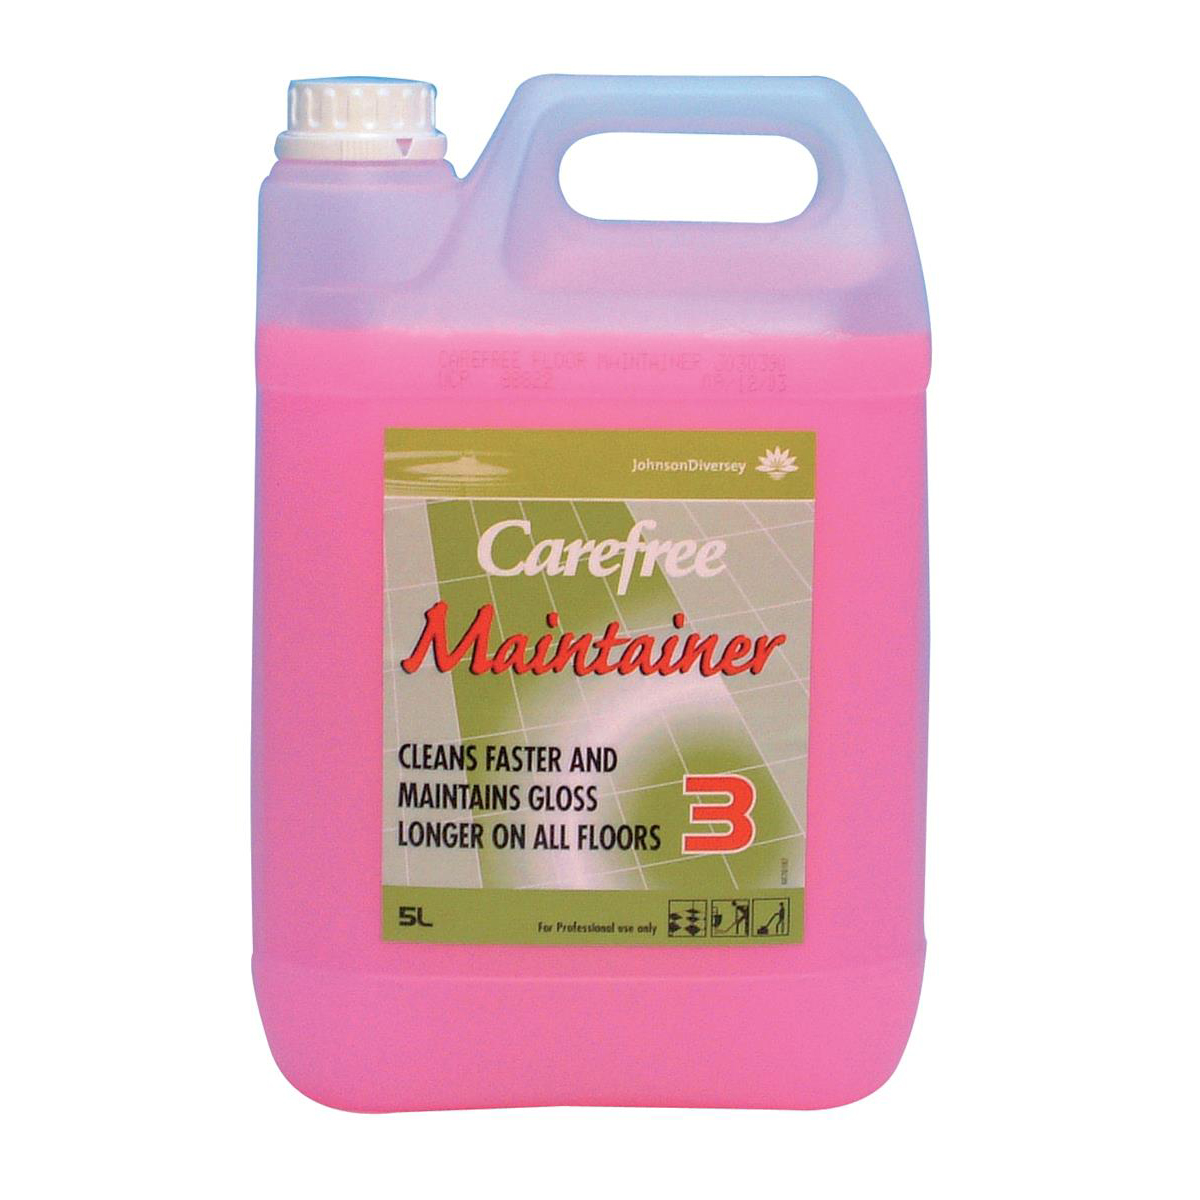 Floor cleaners Johnson Diversey Carefree Floor Maintainer Step Three 5L Ref J030390